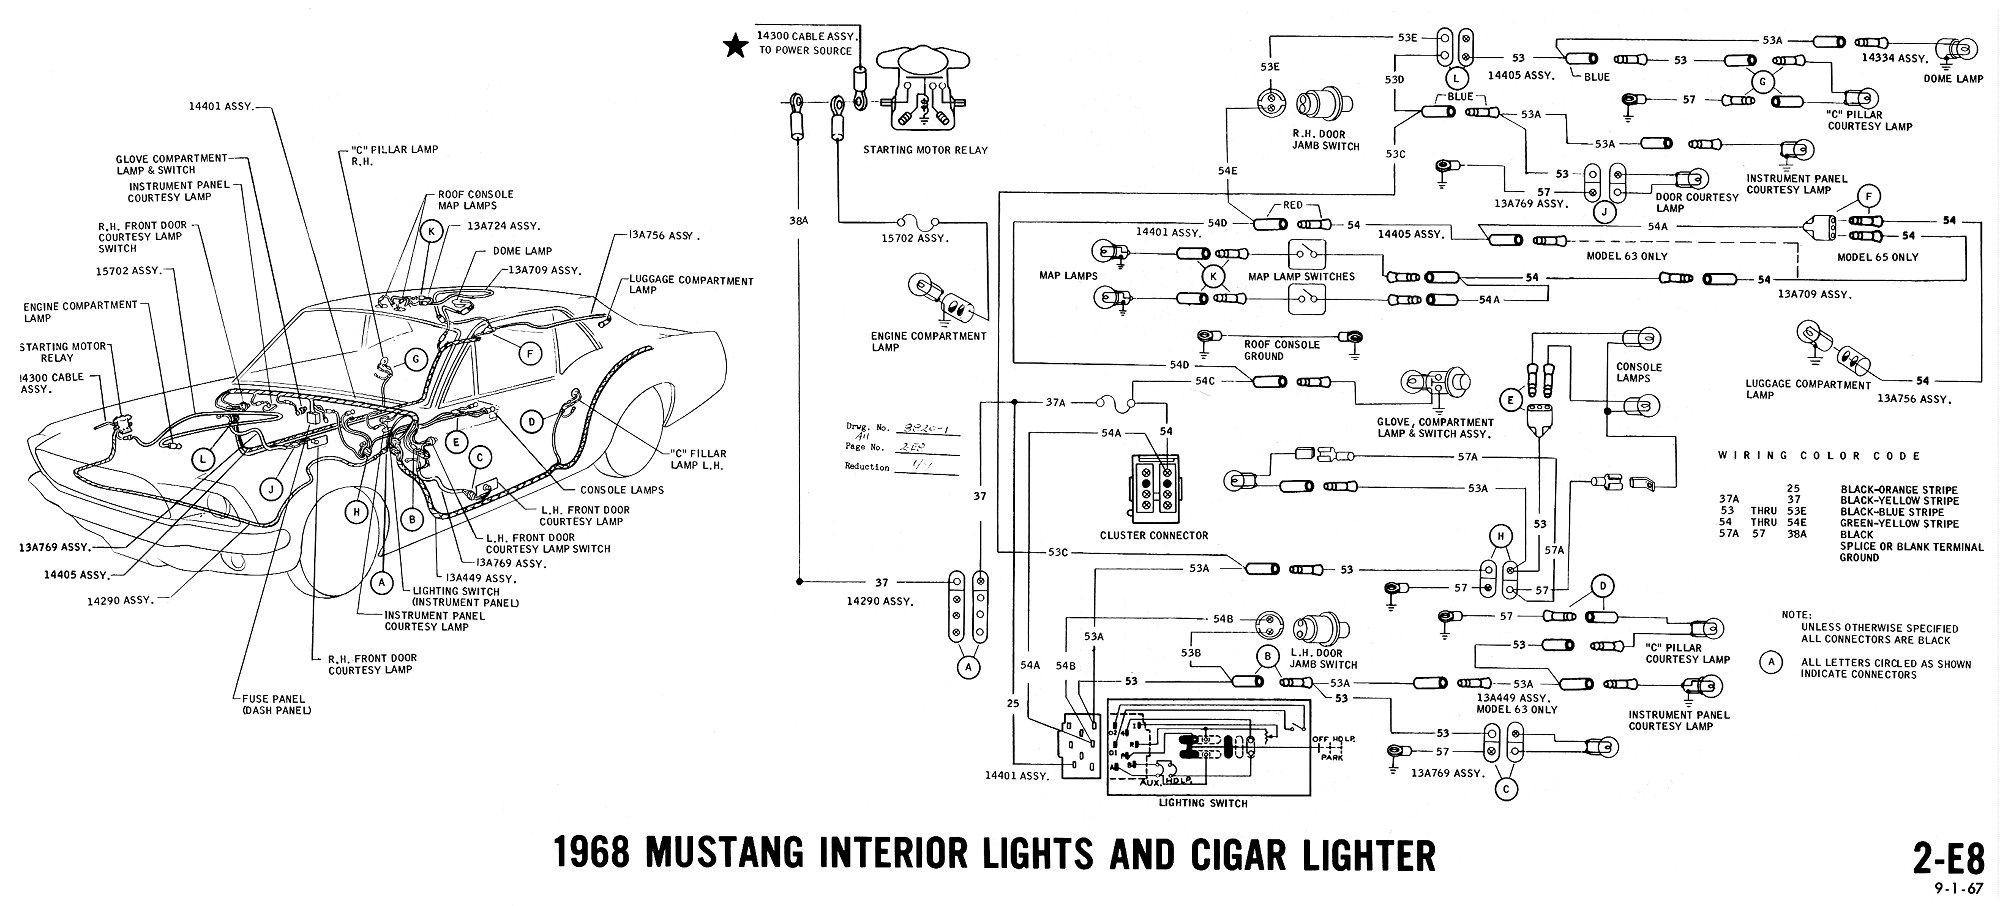 E8 66 mustang wiring diagram radio tape 66 mustang fuse diagram 1970 mustang radio wiring diagram at virtualis.co